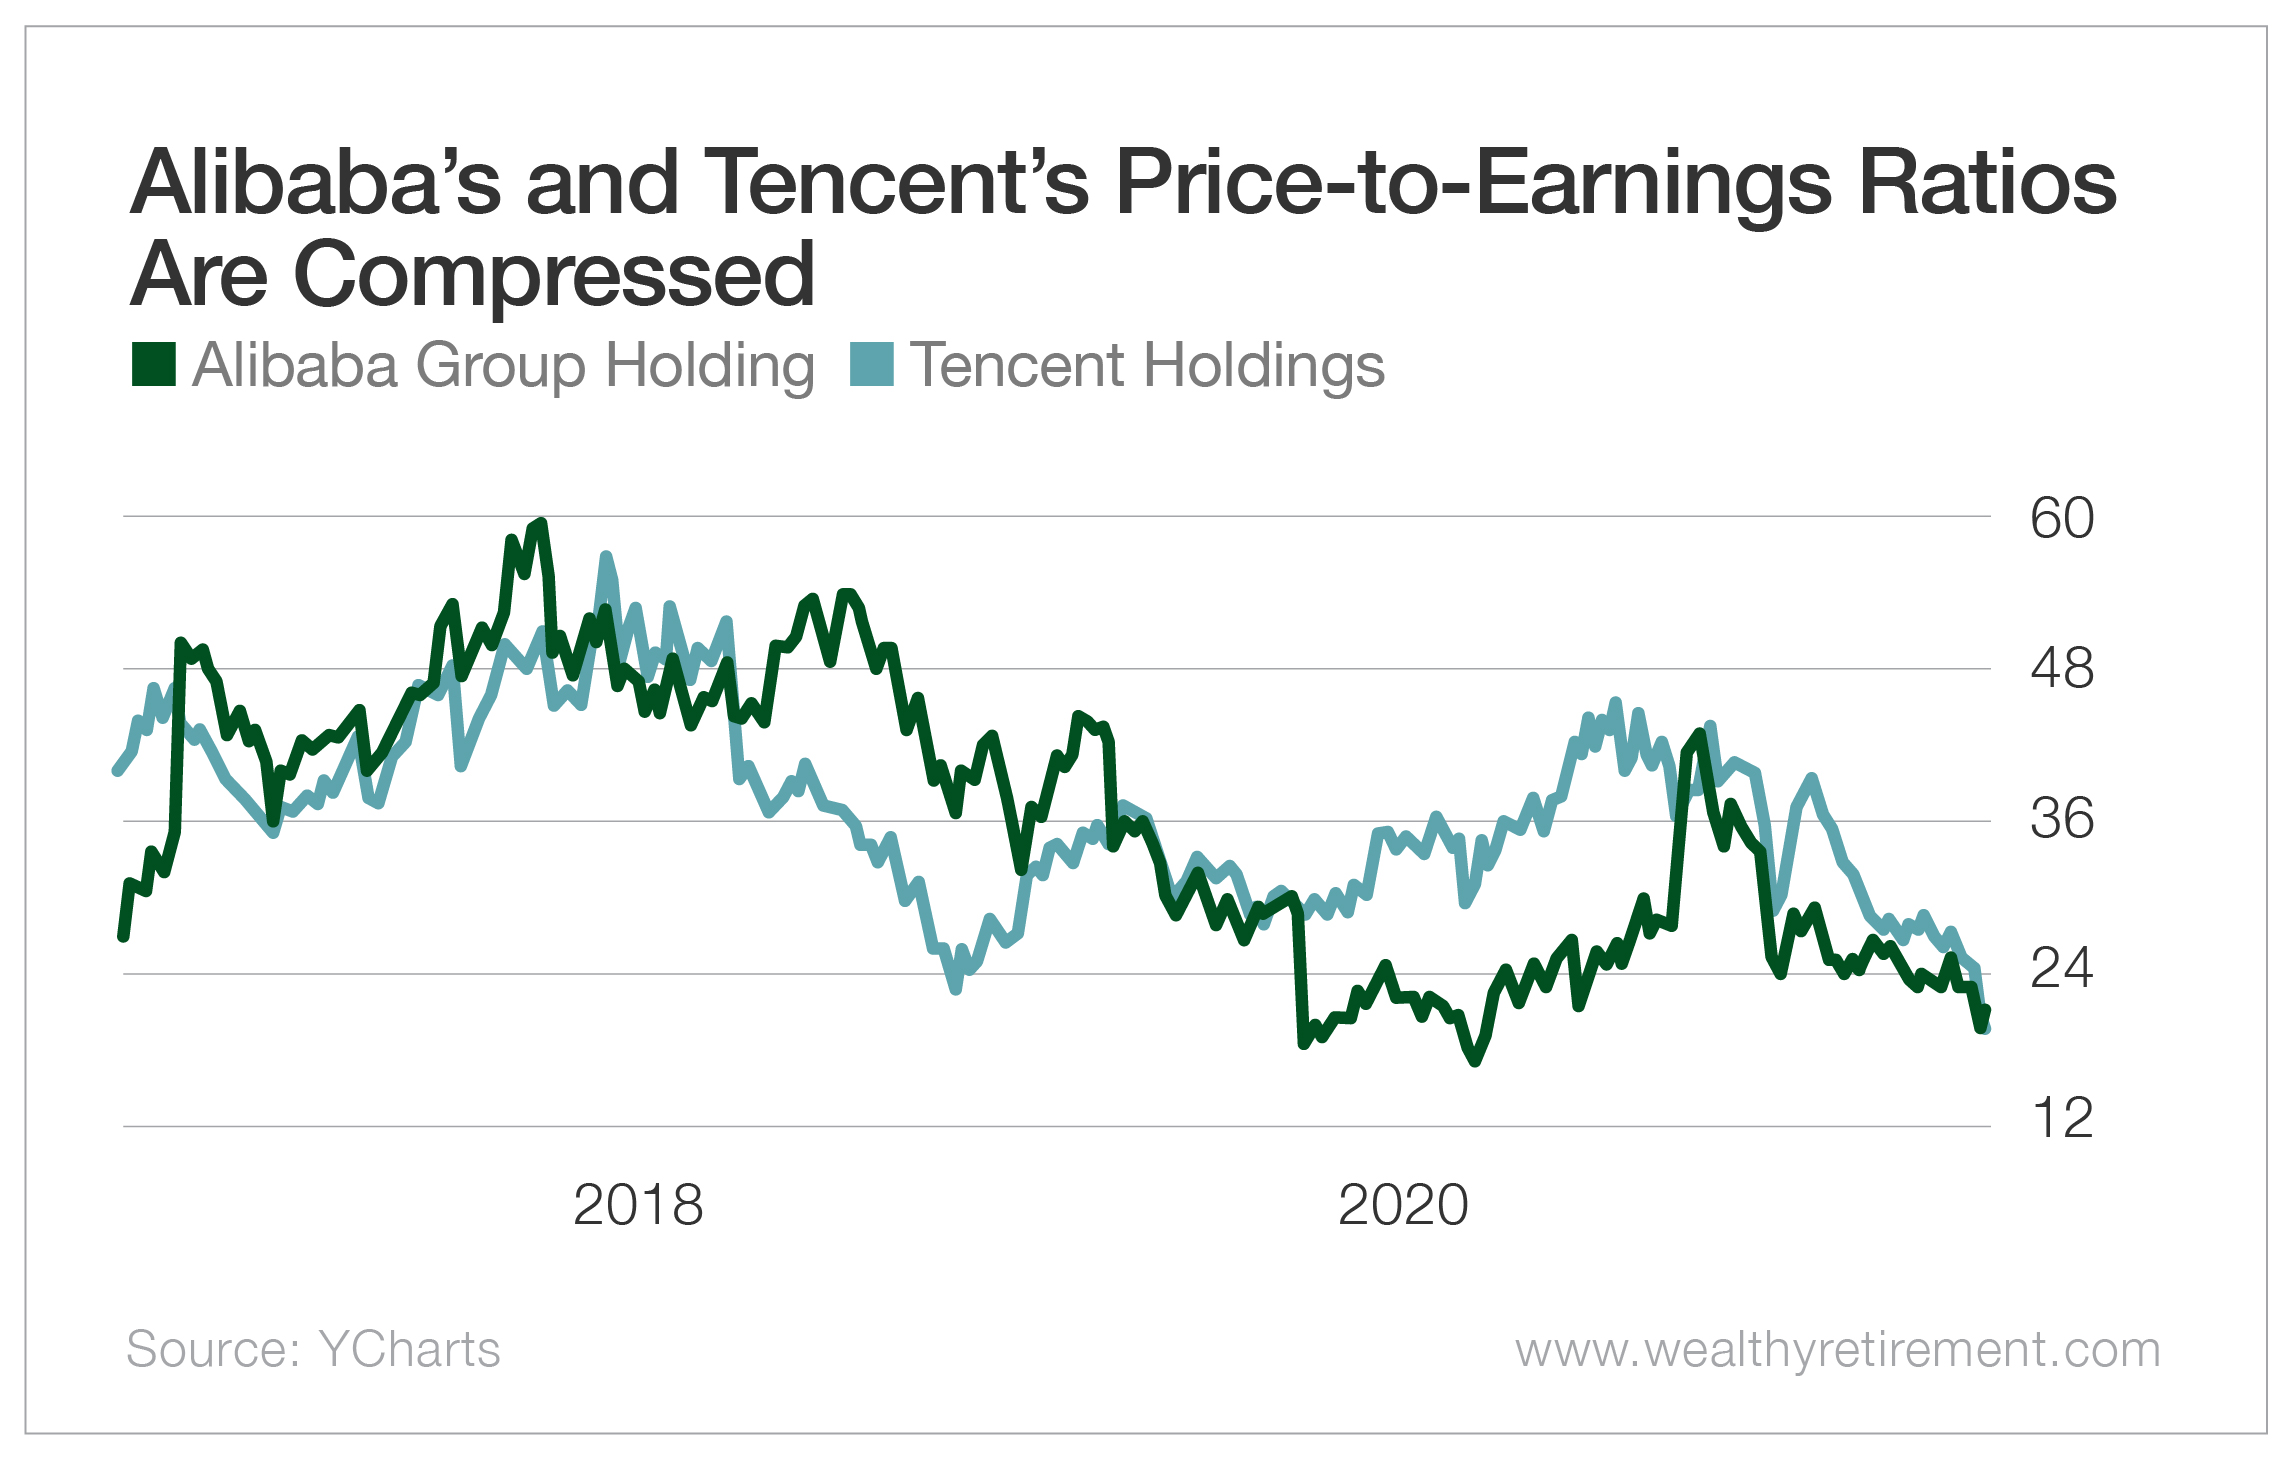 Alibaba's and Tencent's Price-to-Earnings Ratios are Compressed